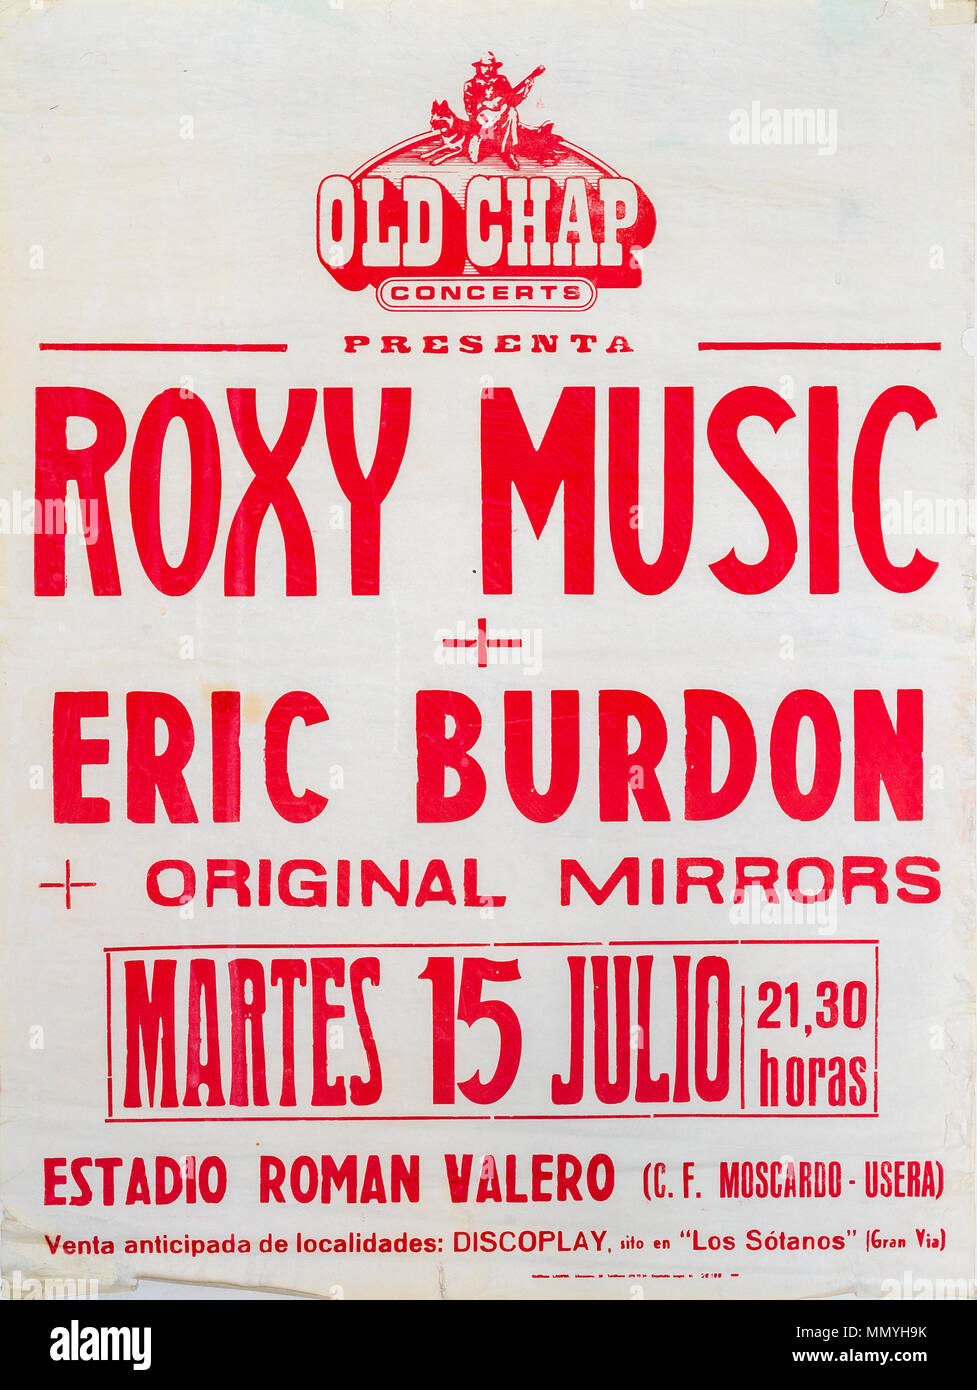 Roxy Music and Eric Burdon, Madrid tour 1980, Musical concert poster Stock Photo